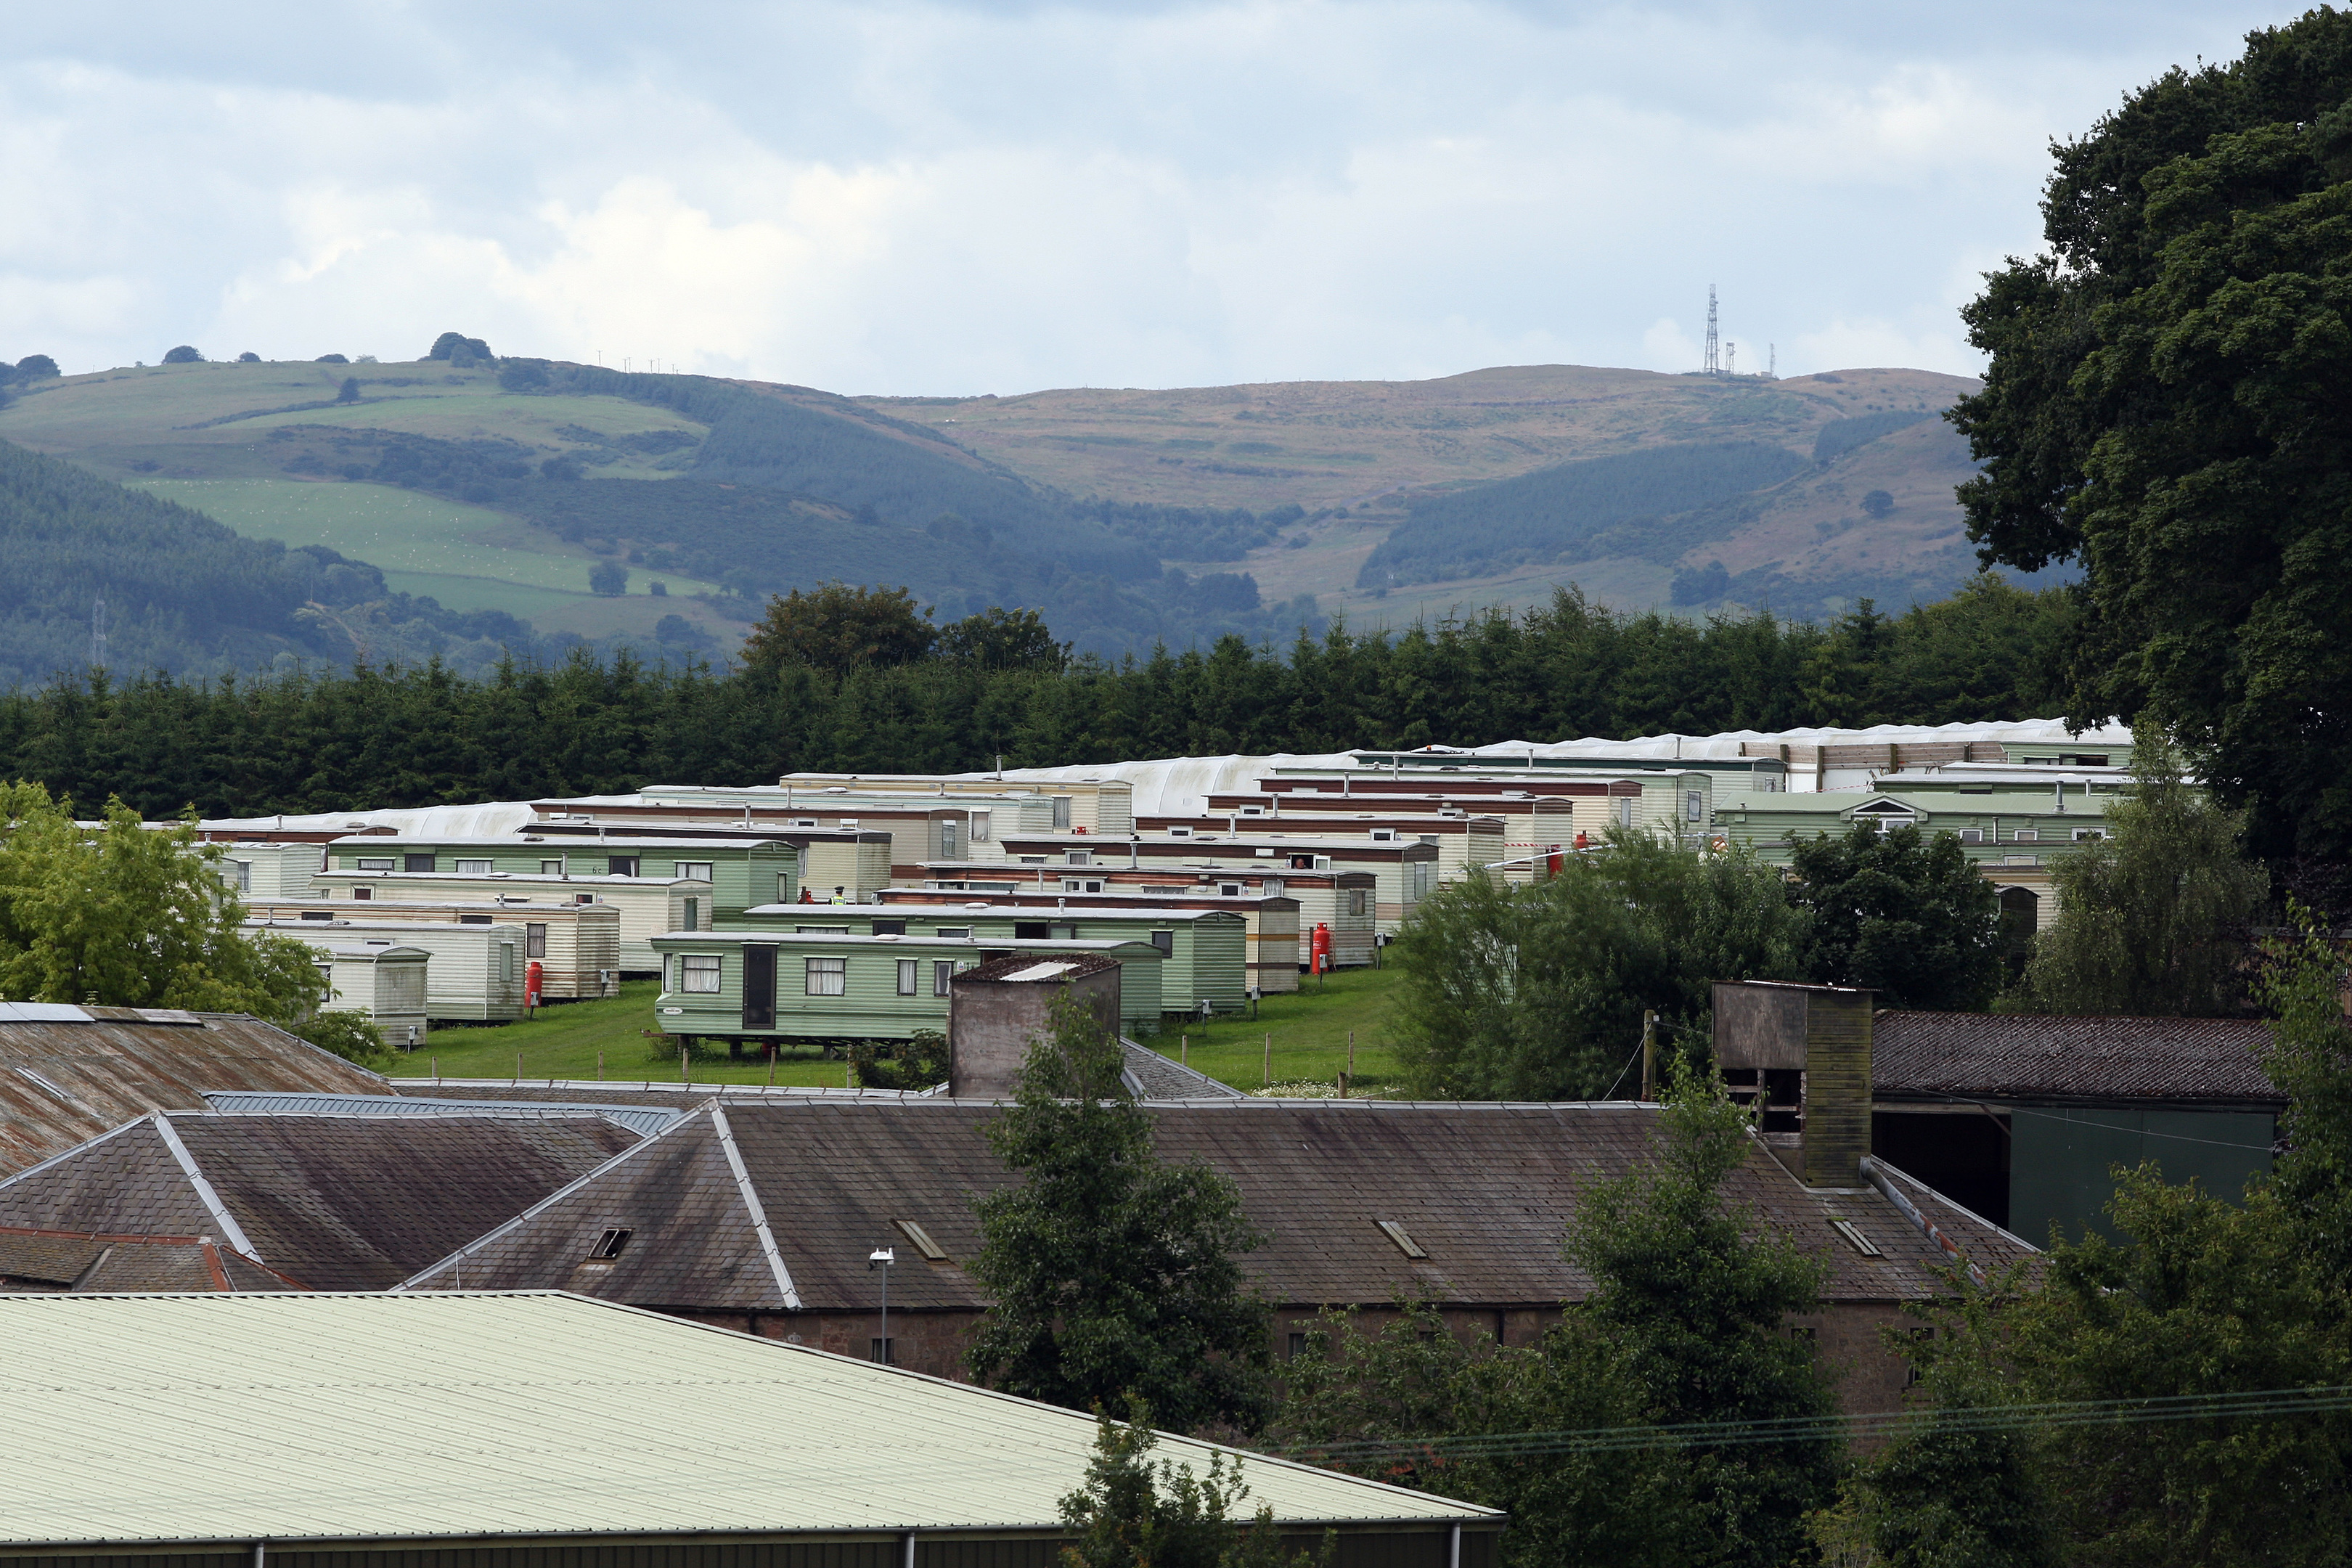 Around 200 migrant workers are housed in the caravans.